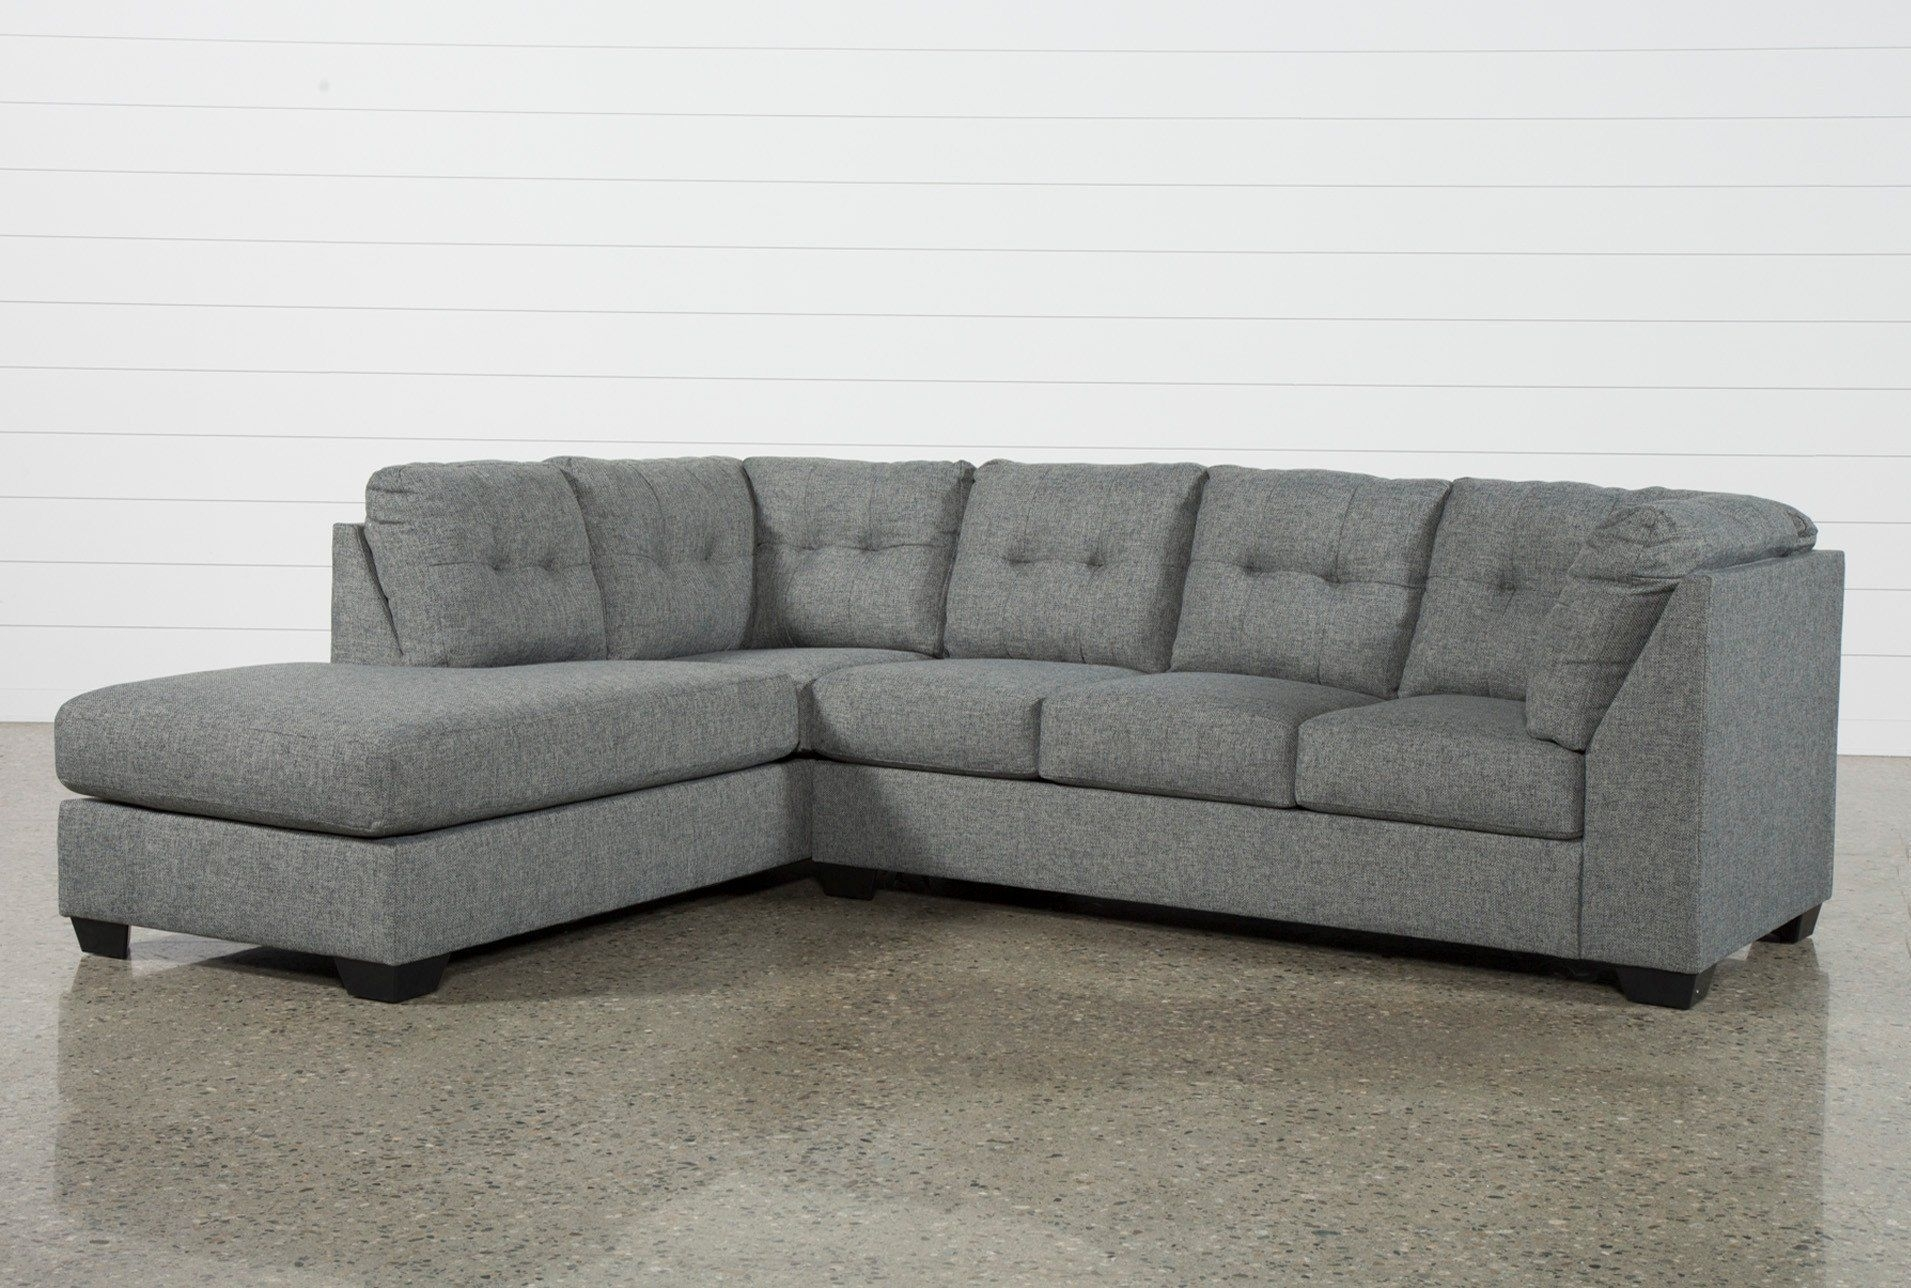 Cosmos Grey 2 Piece Sectional W/laf Chaise | Quilling | Pinterest within Kerri 2 Piece Sectionals With Laf Chaise (Image 7 of 30)